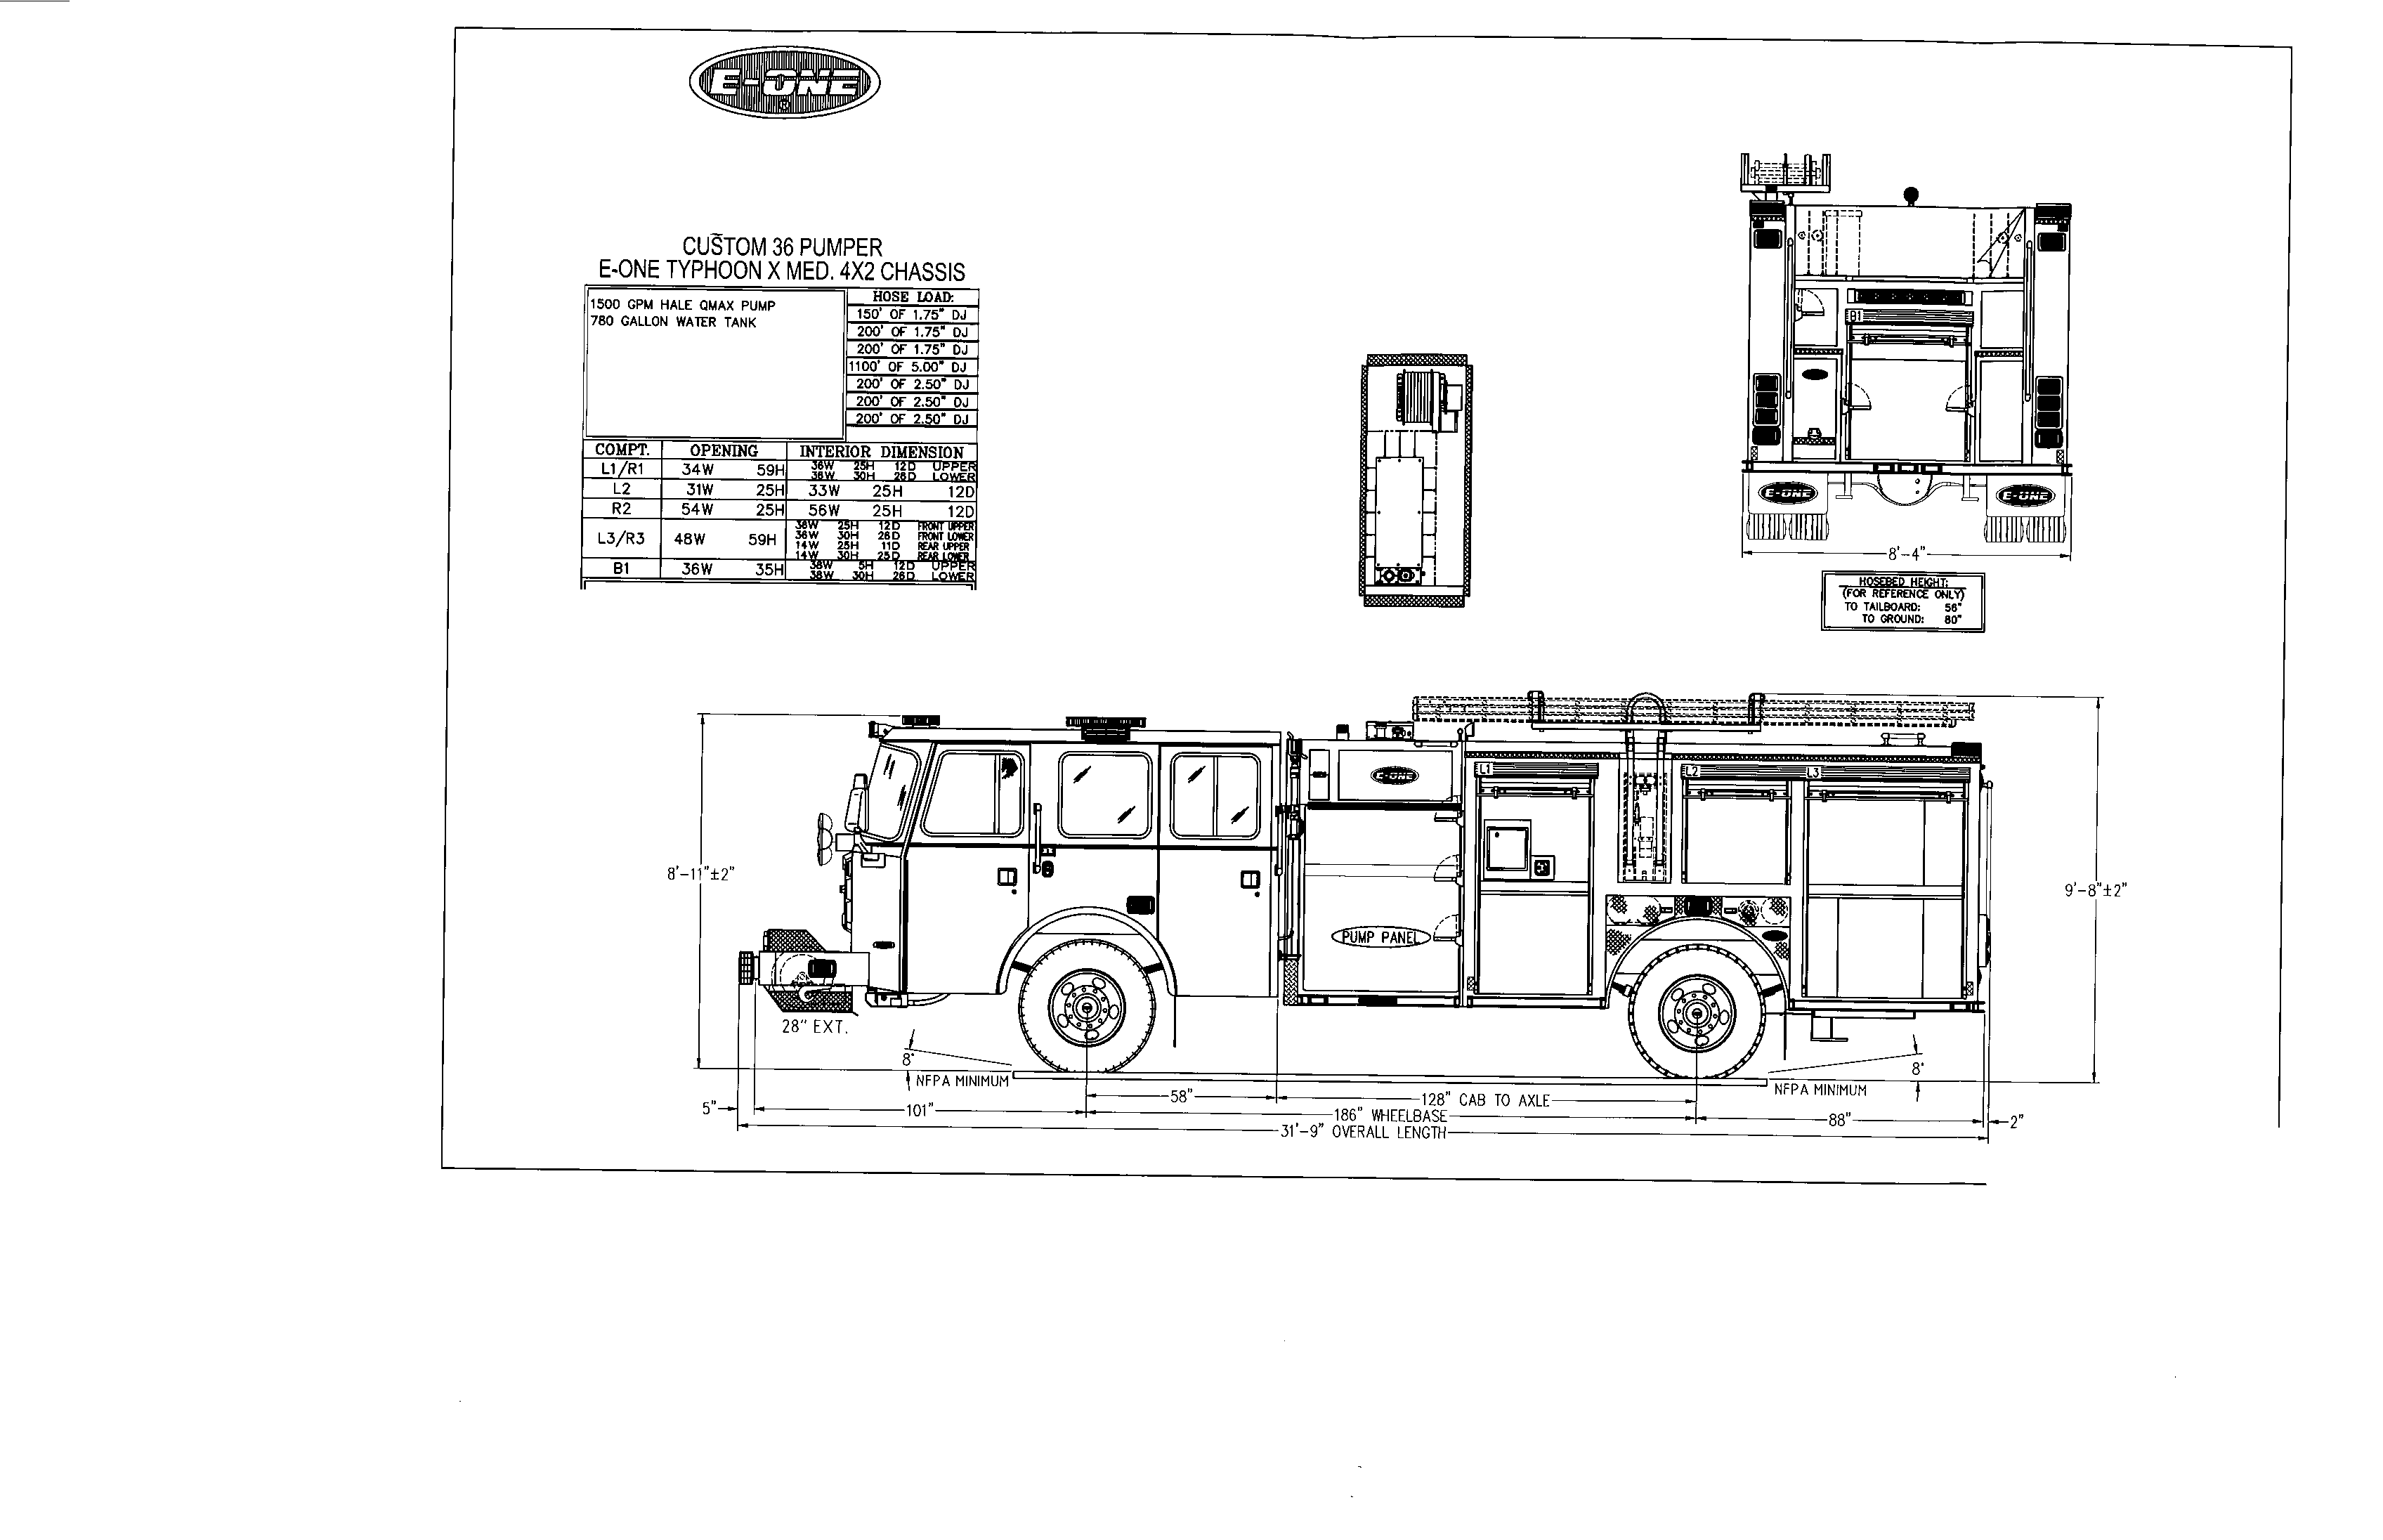 Hale Pump Diagram